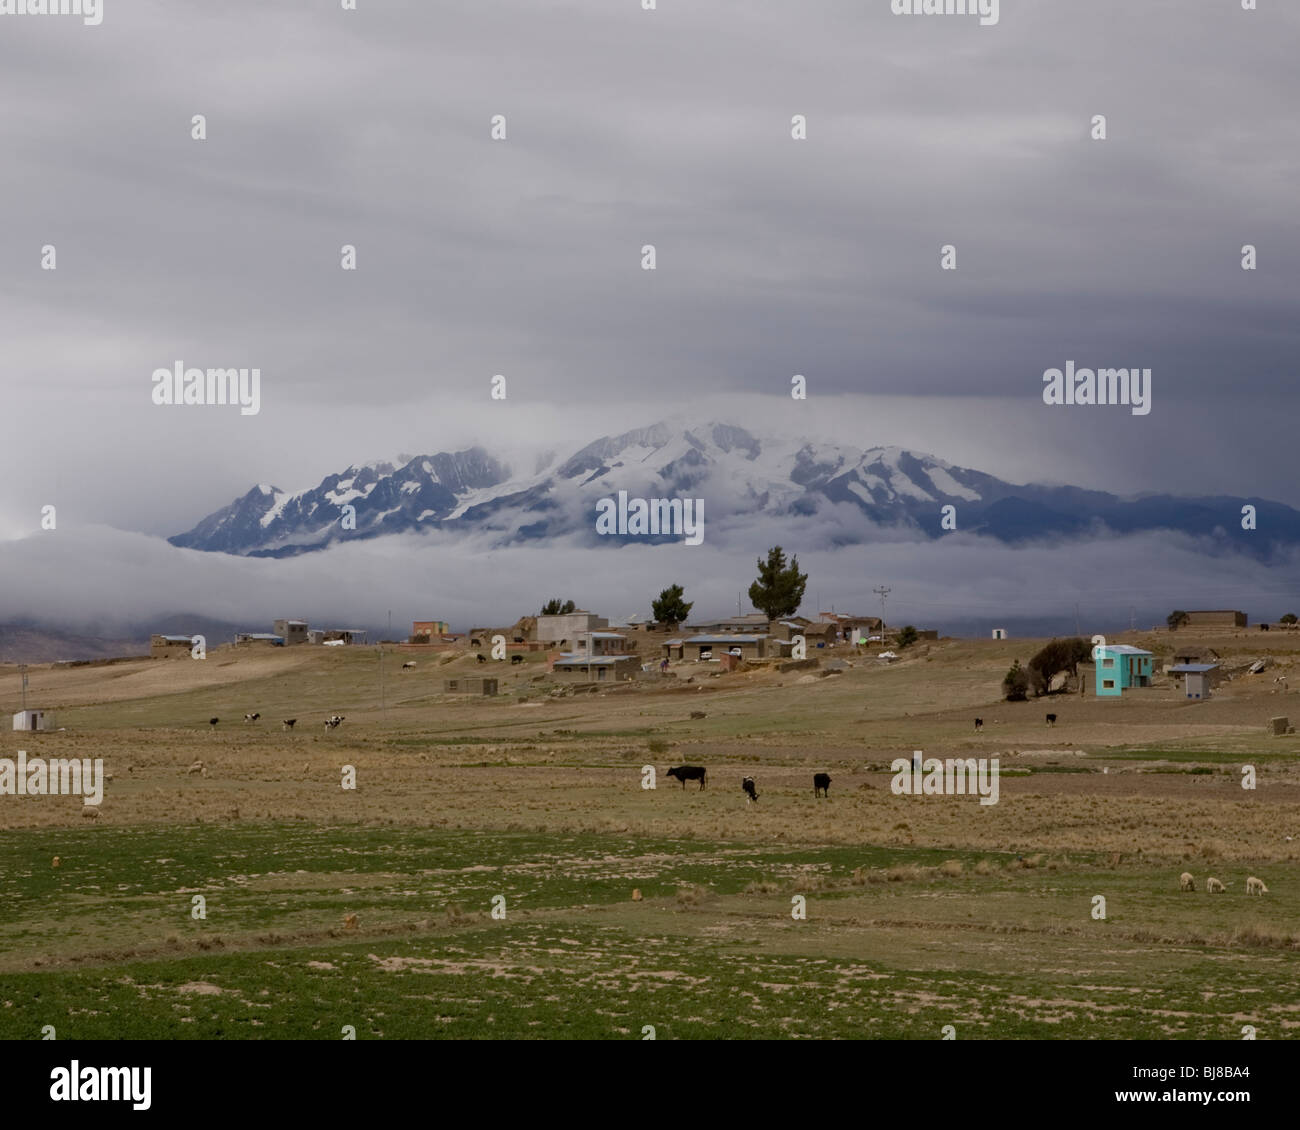 small settlement and cows at foot of majestic mountain, alto plano, bolivia - Stock Image